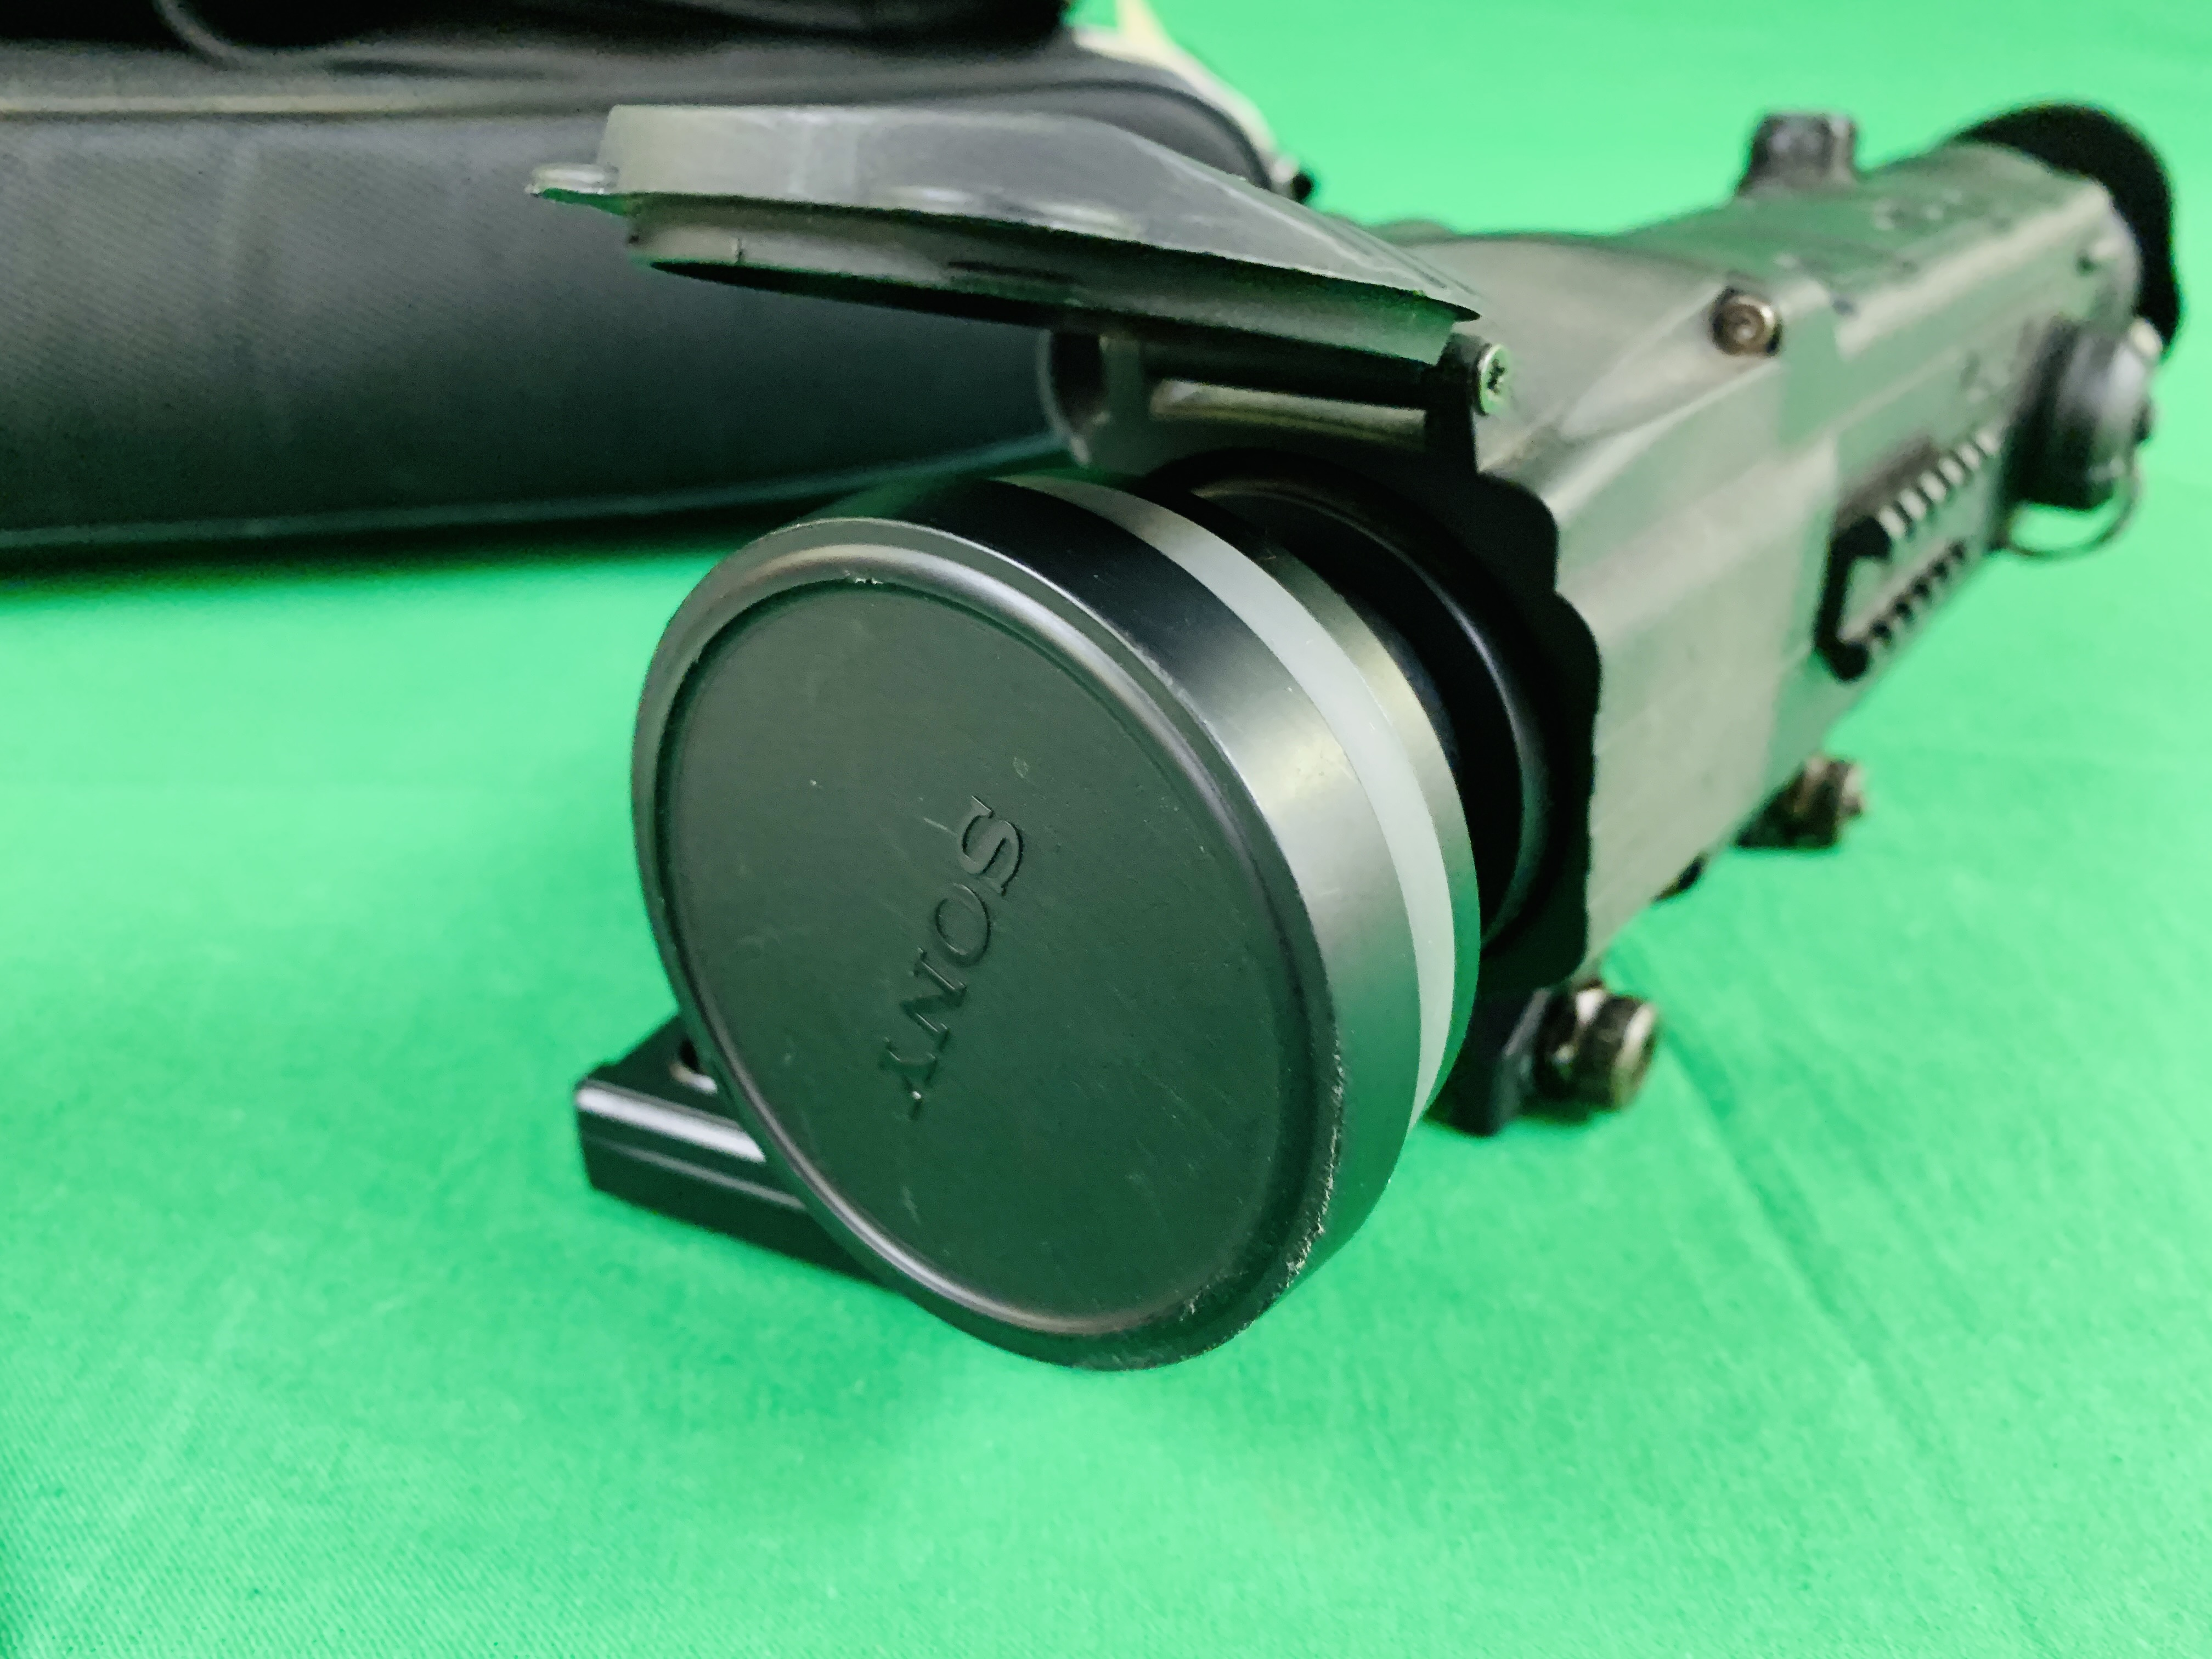 PULSAR N750 DIGI SIGHT RIFLE SCOPE COMPLETE WITH SONY TELE CONVERSION LENS ALONG WITH INSTRUCTION - Image 7 of 8